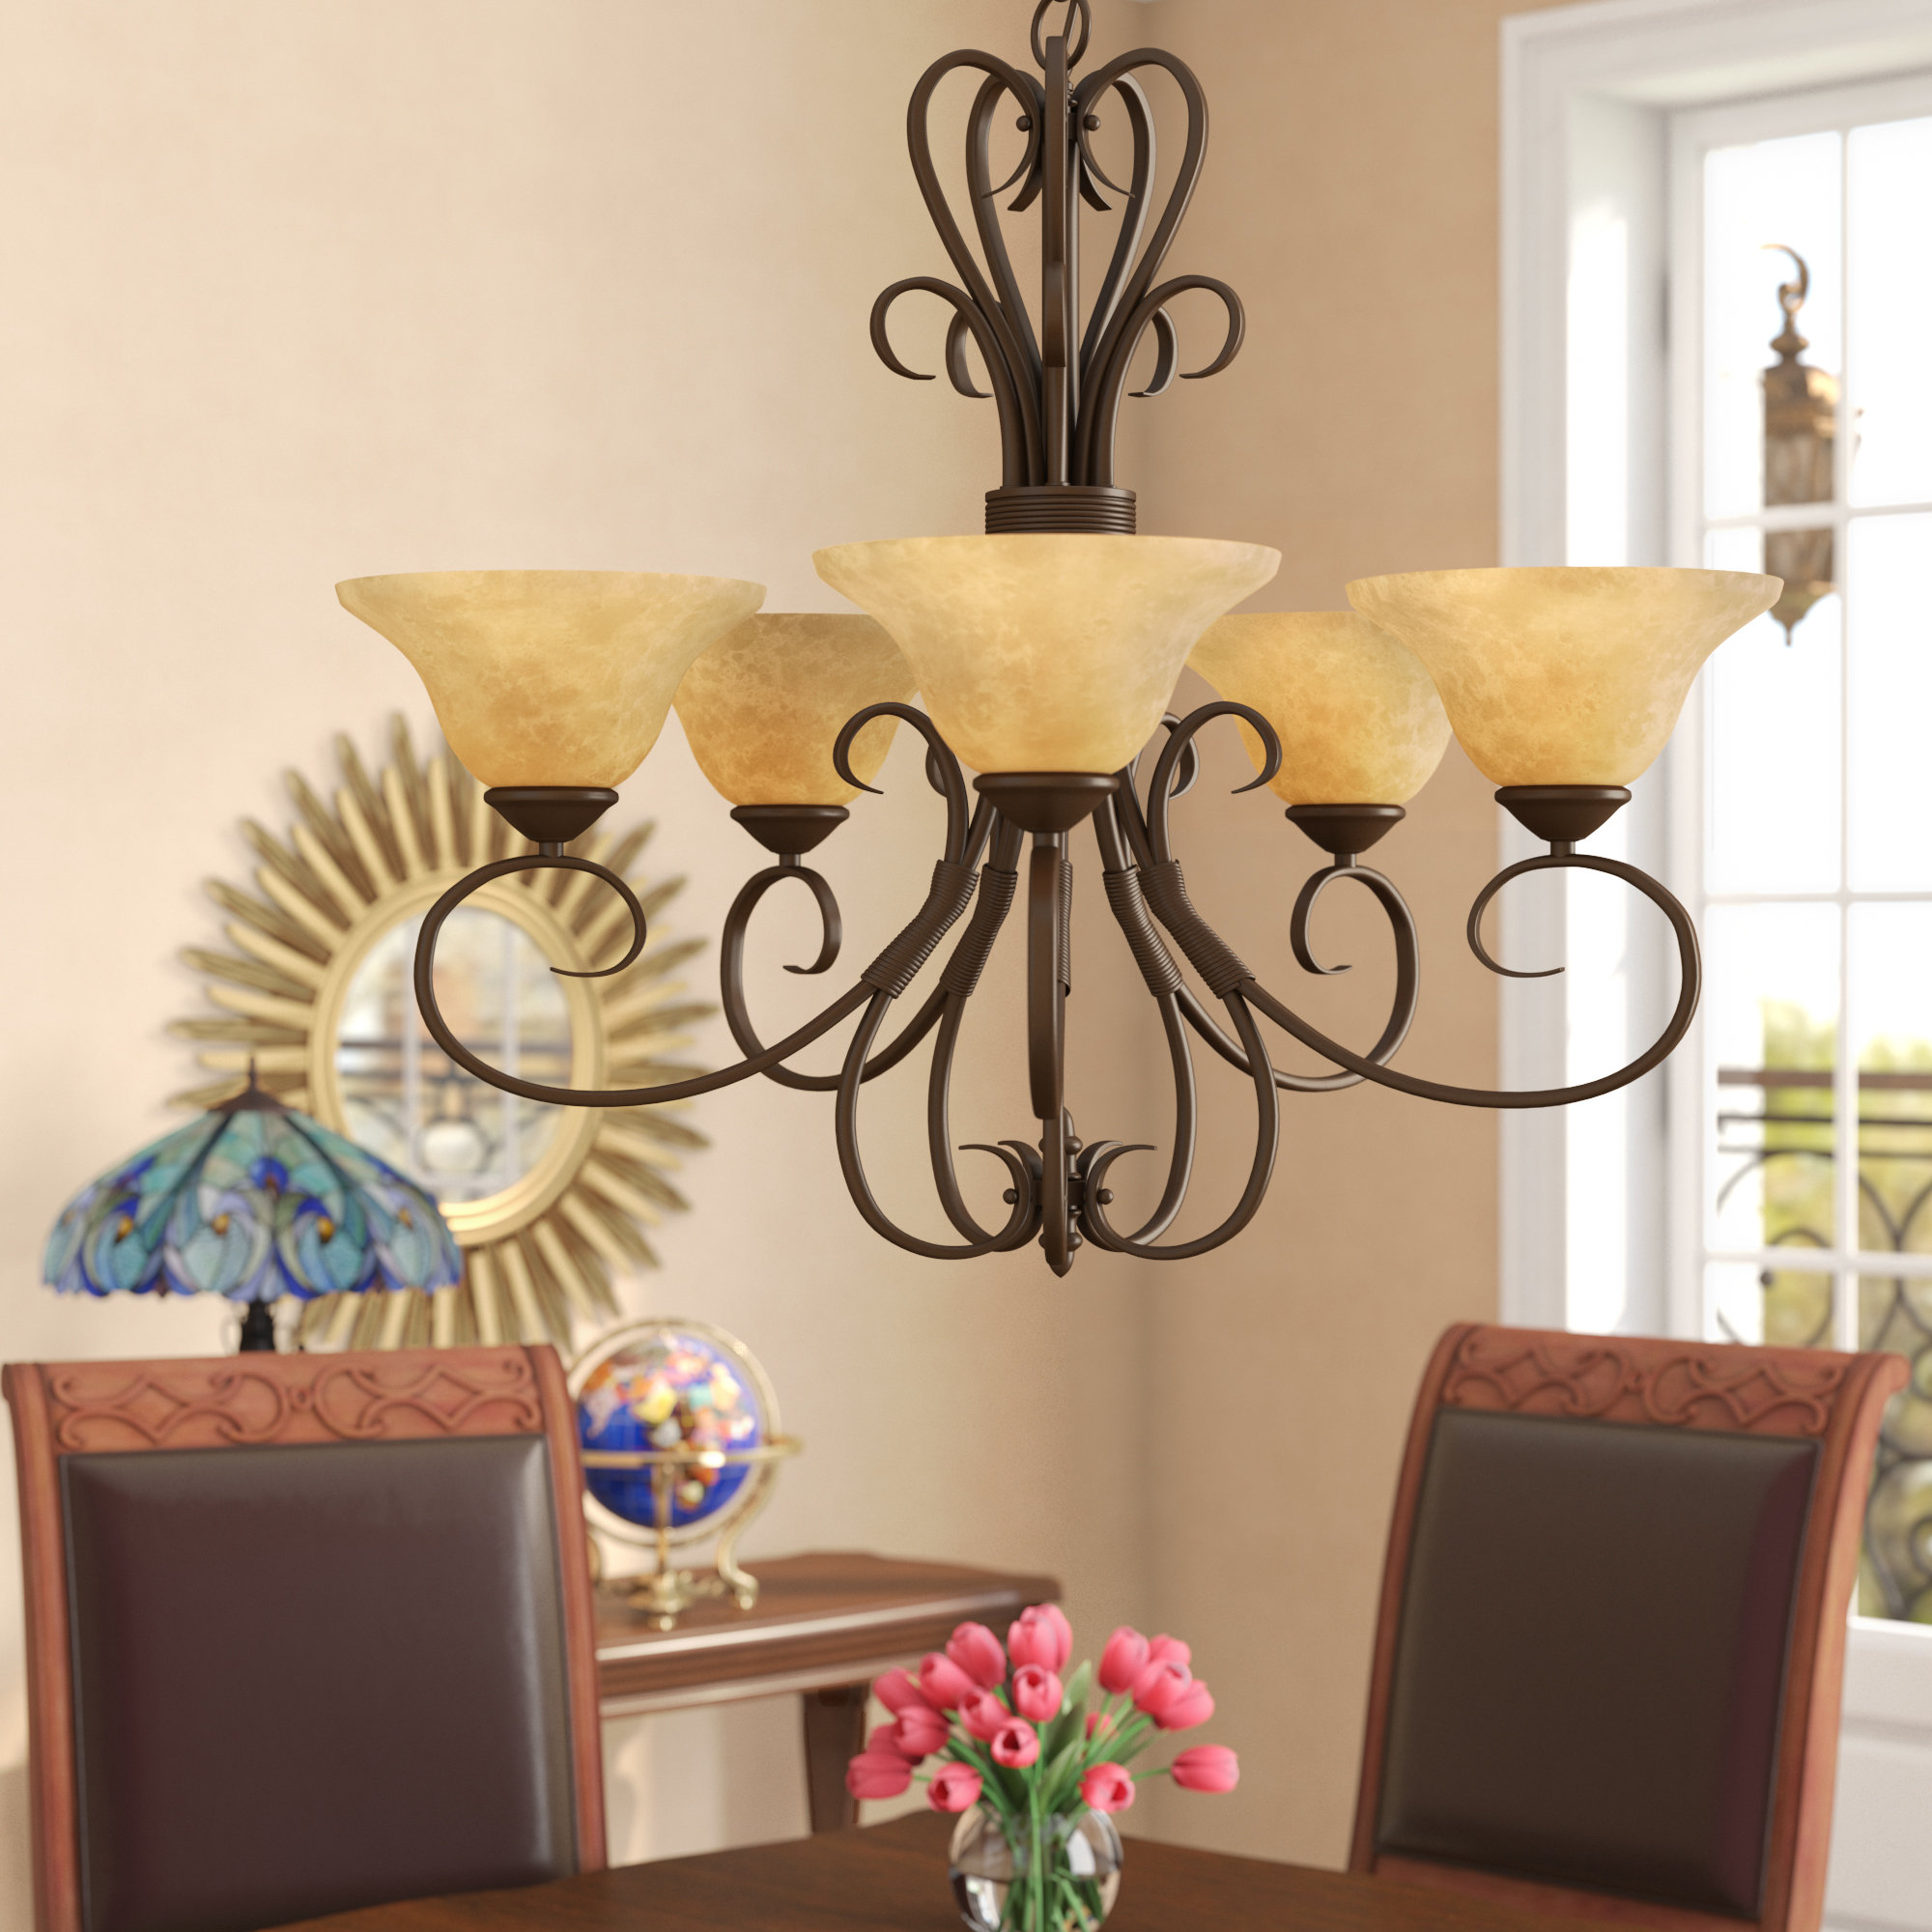 Alcott Hill Bloomville 5 Light Shaded Chandelier & Reviews Intended For Gaines 5 Light Shaded Chandeliers (View 24 of 30)